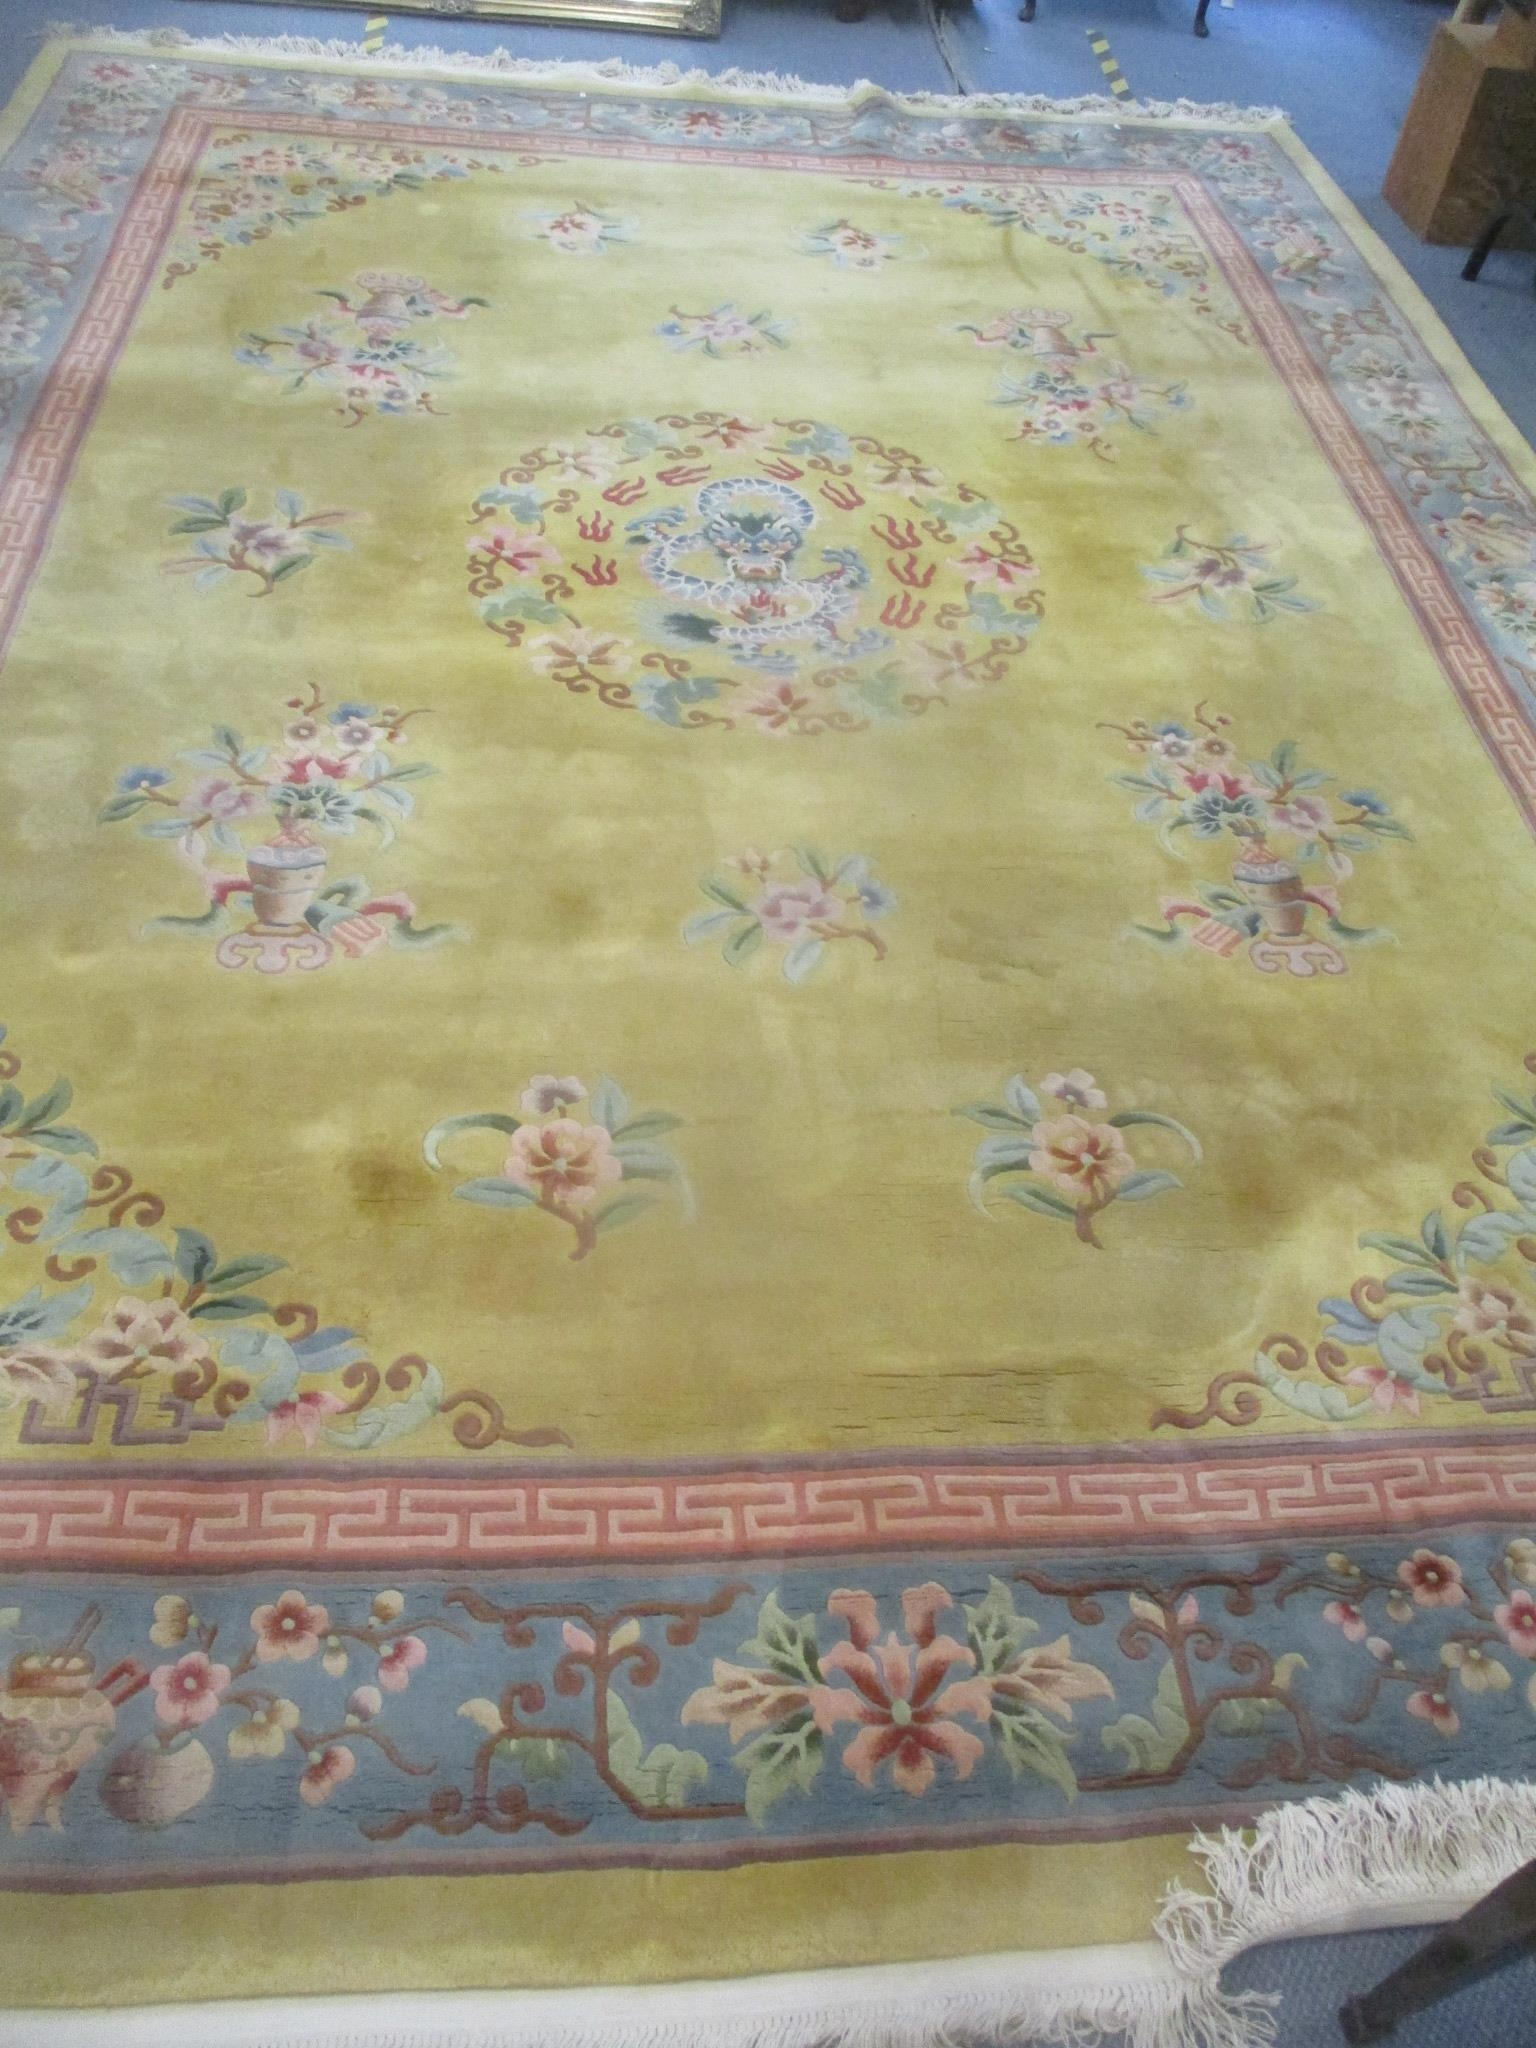 A good quality Chinese rug, bought at Harrods, traditional pattern, central dragon, floral motets - Image 3 of 5